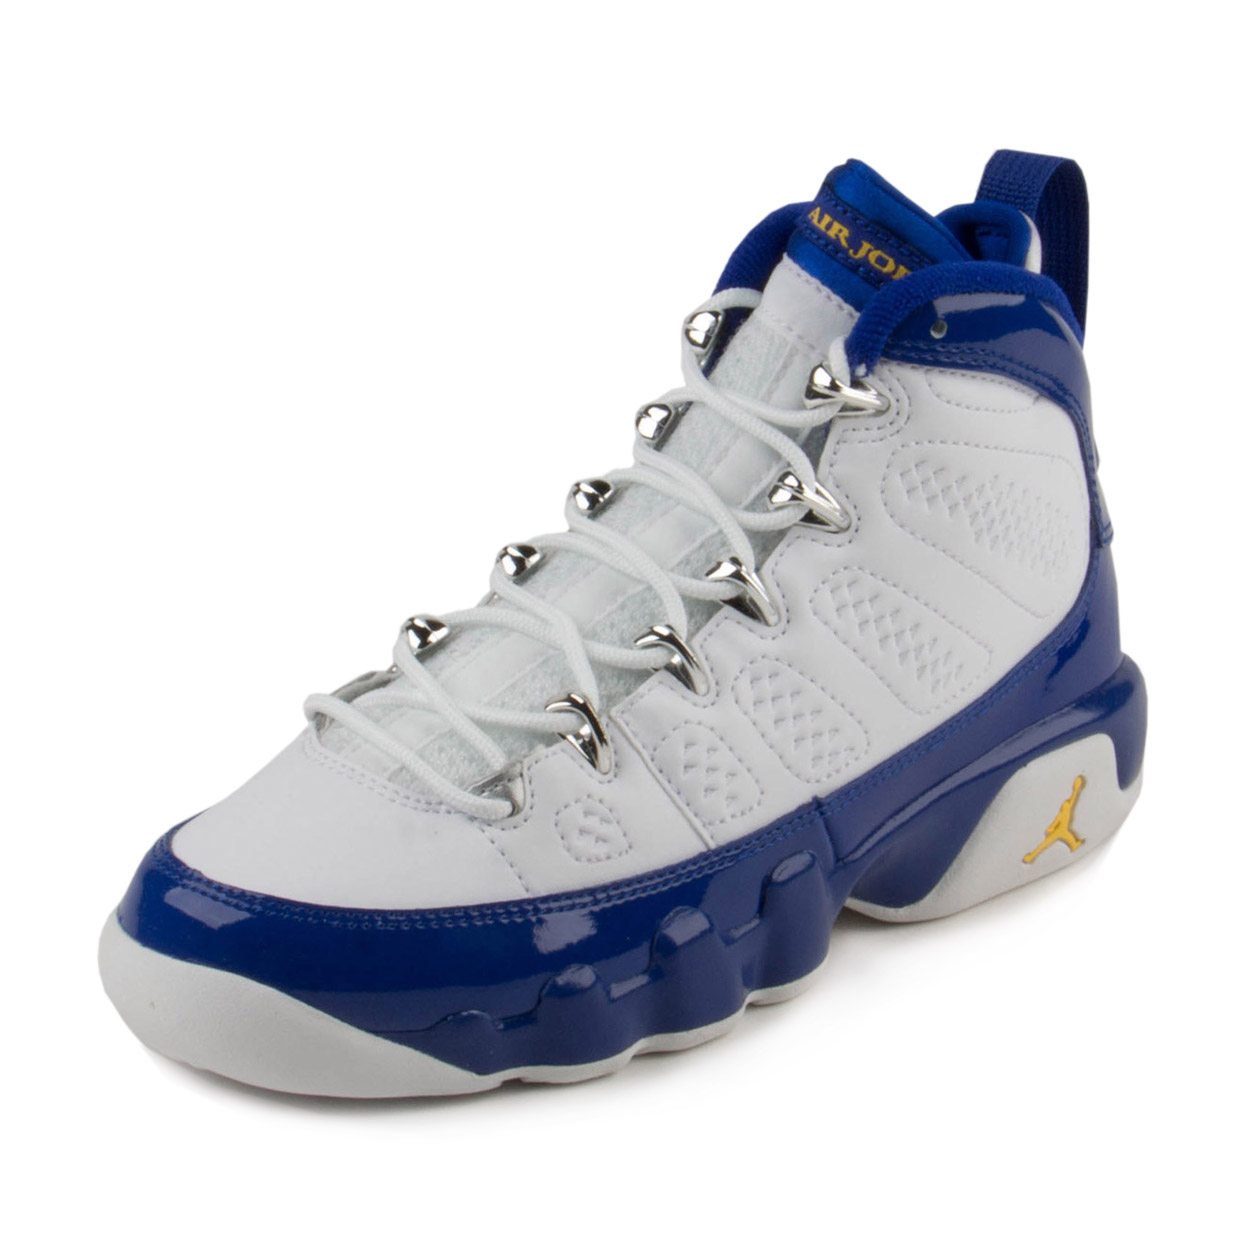 4529f7bb53e8 Nike - Nike Boys Air Jordan 9 Retro BG